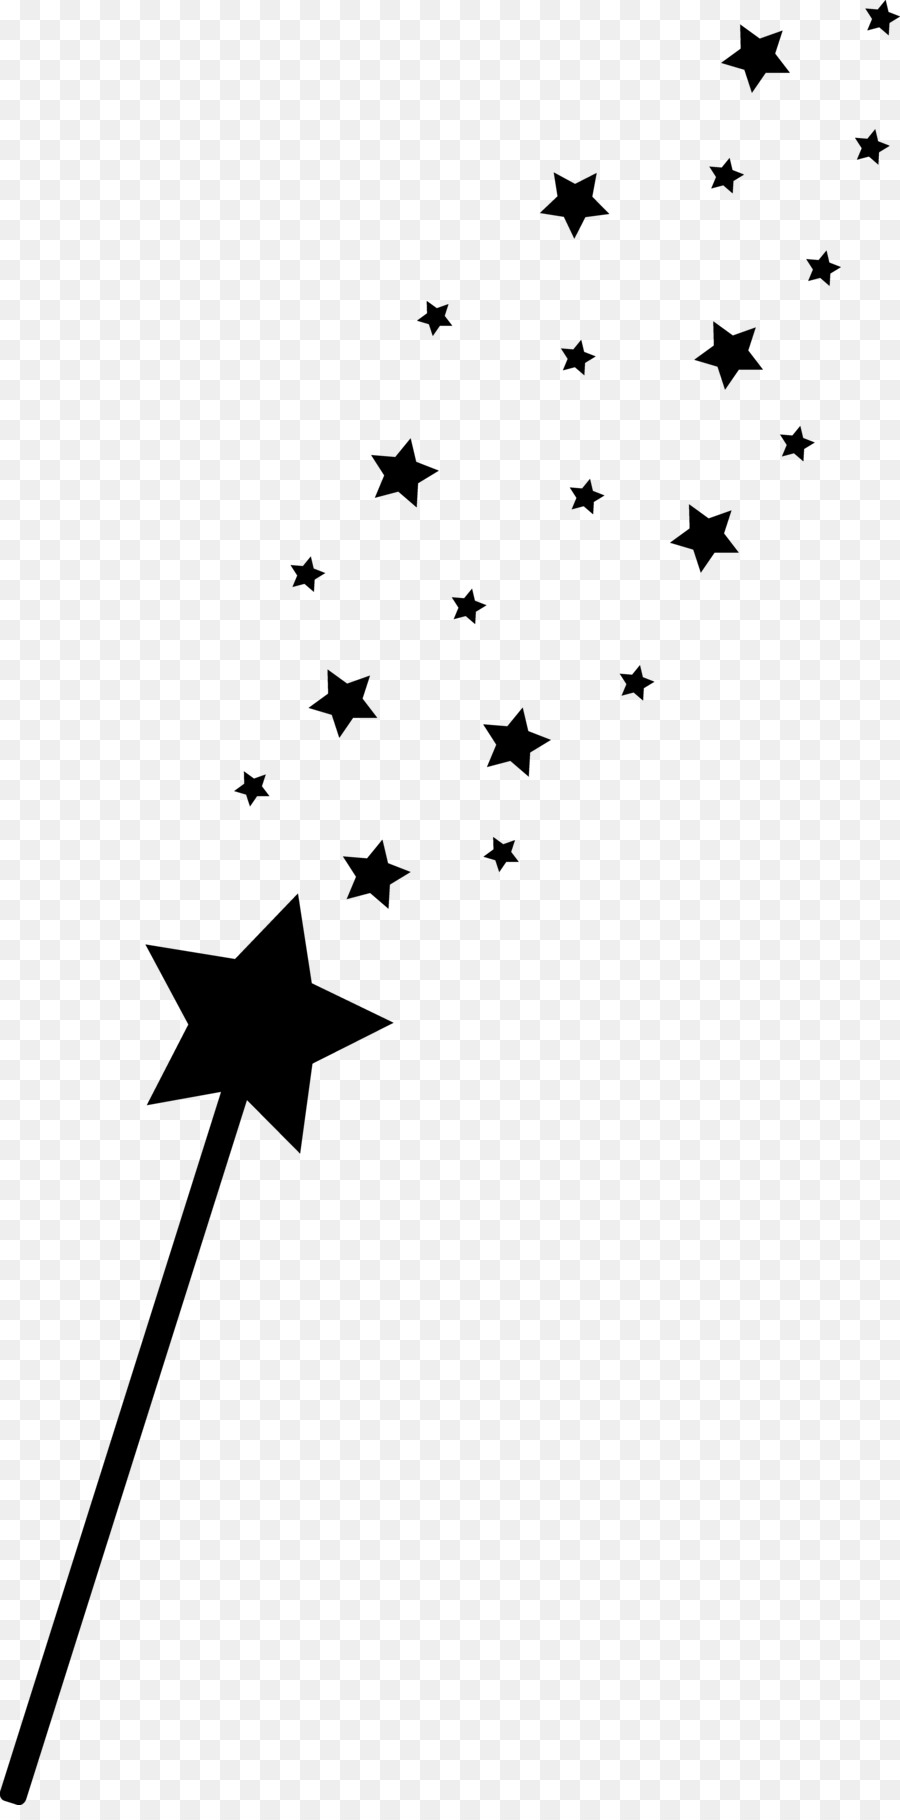 Fairy godmother wand clipart jpg royalty free library Fairy godmother Wand Magician - Fairy png download - 600*600 - Free ... jpg royalty free library